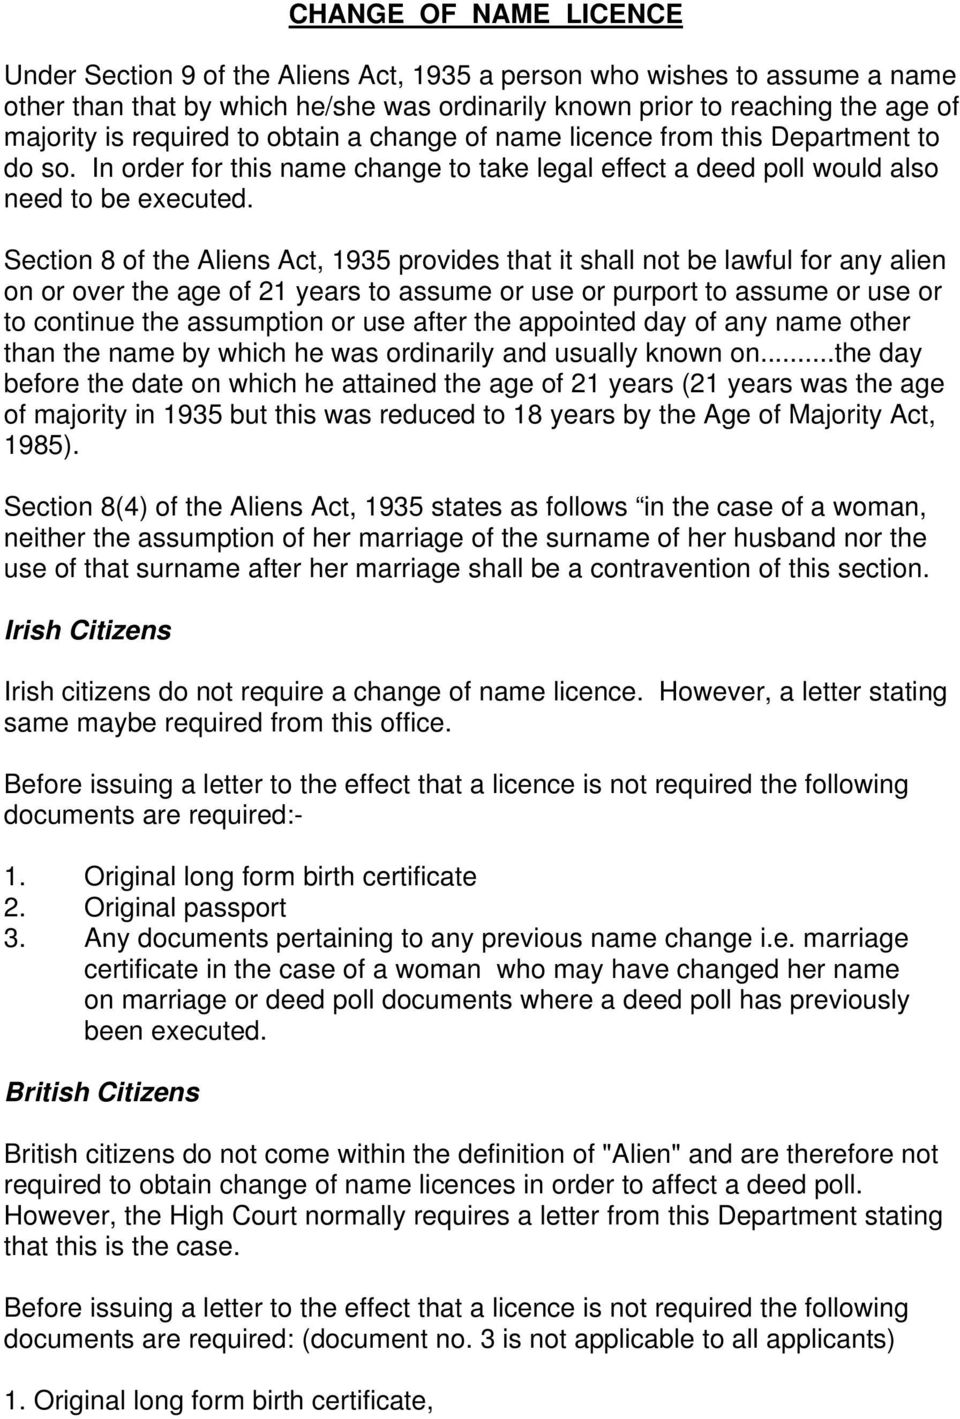 Section 8 of the Aliens Act, 1935 provides that it shall not be lawful for any alien on or over the age of 21 years to assume or use or purport to assume or use or to continue the assumption or use